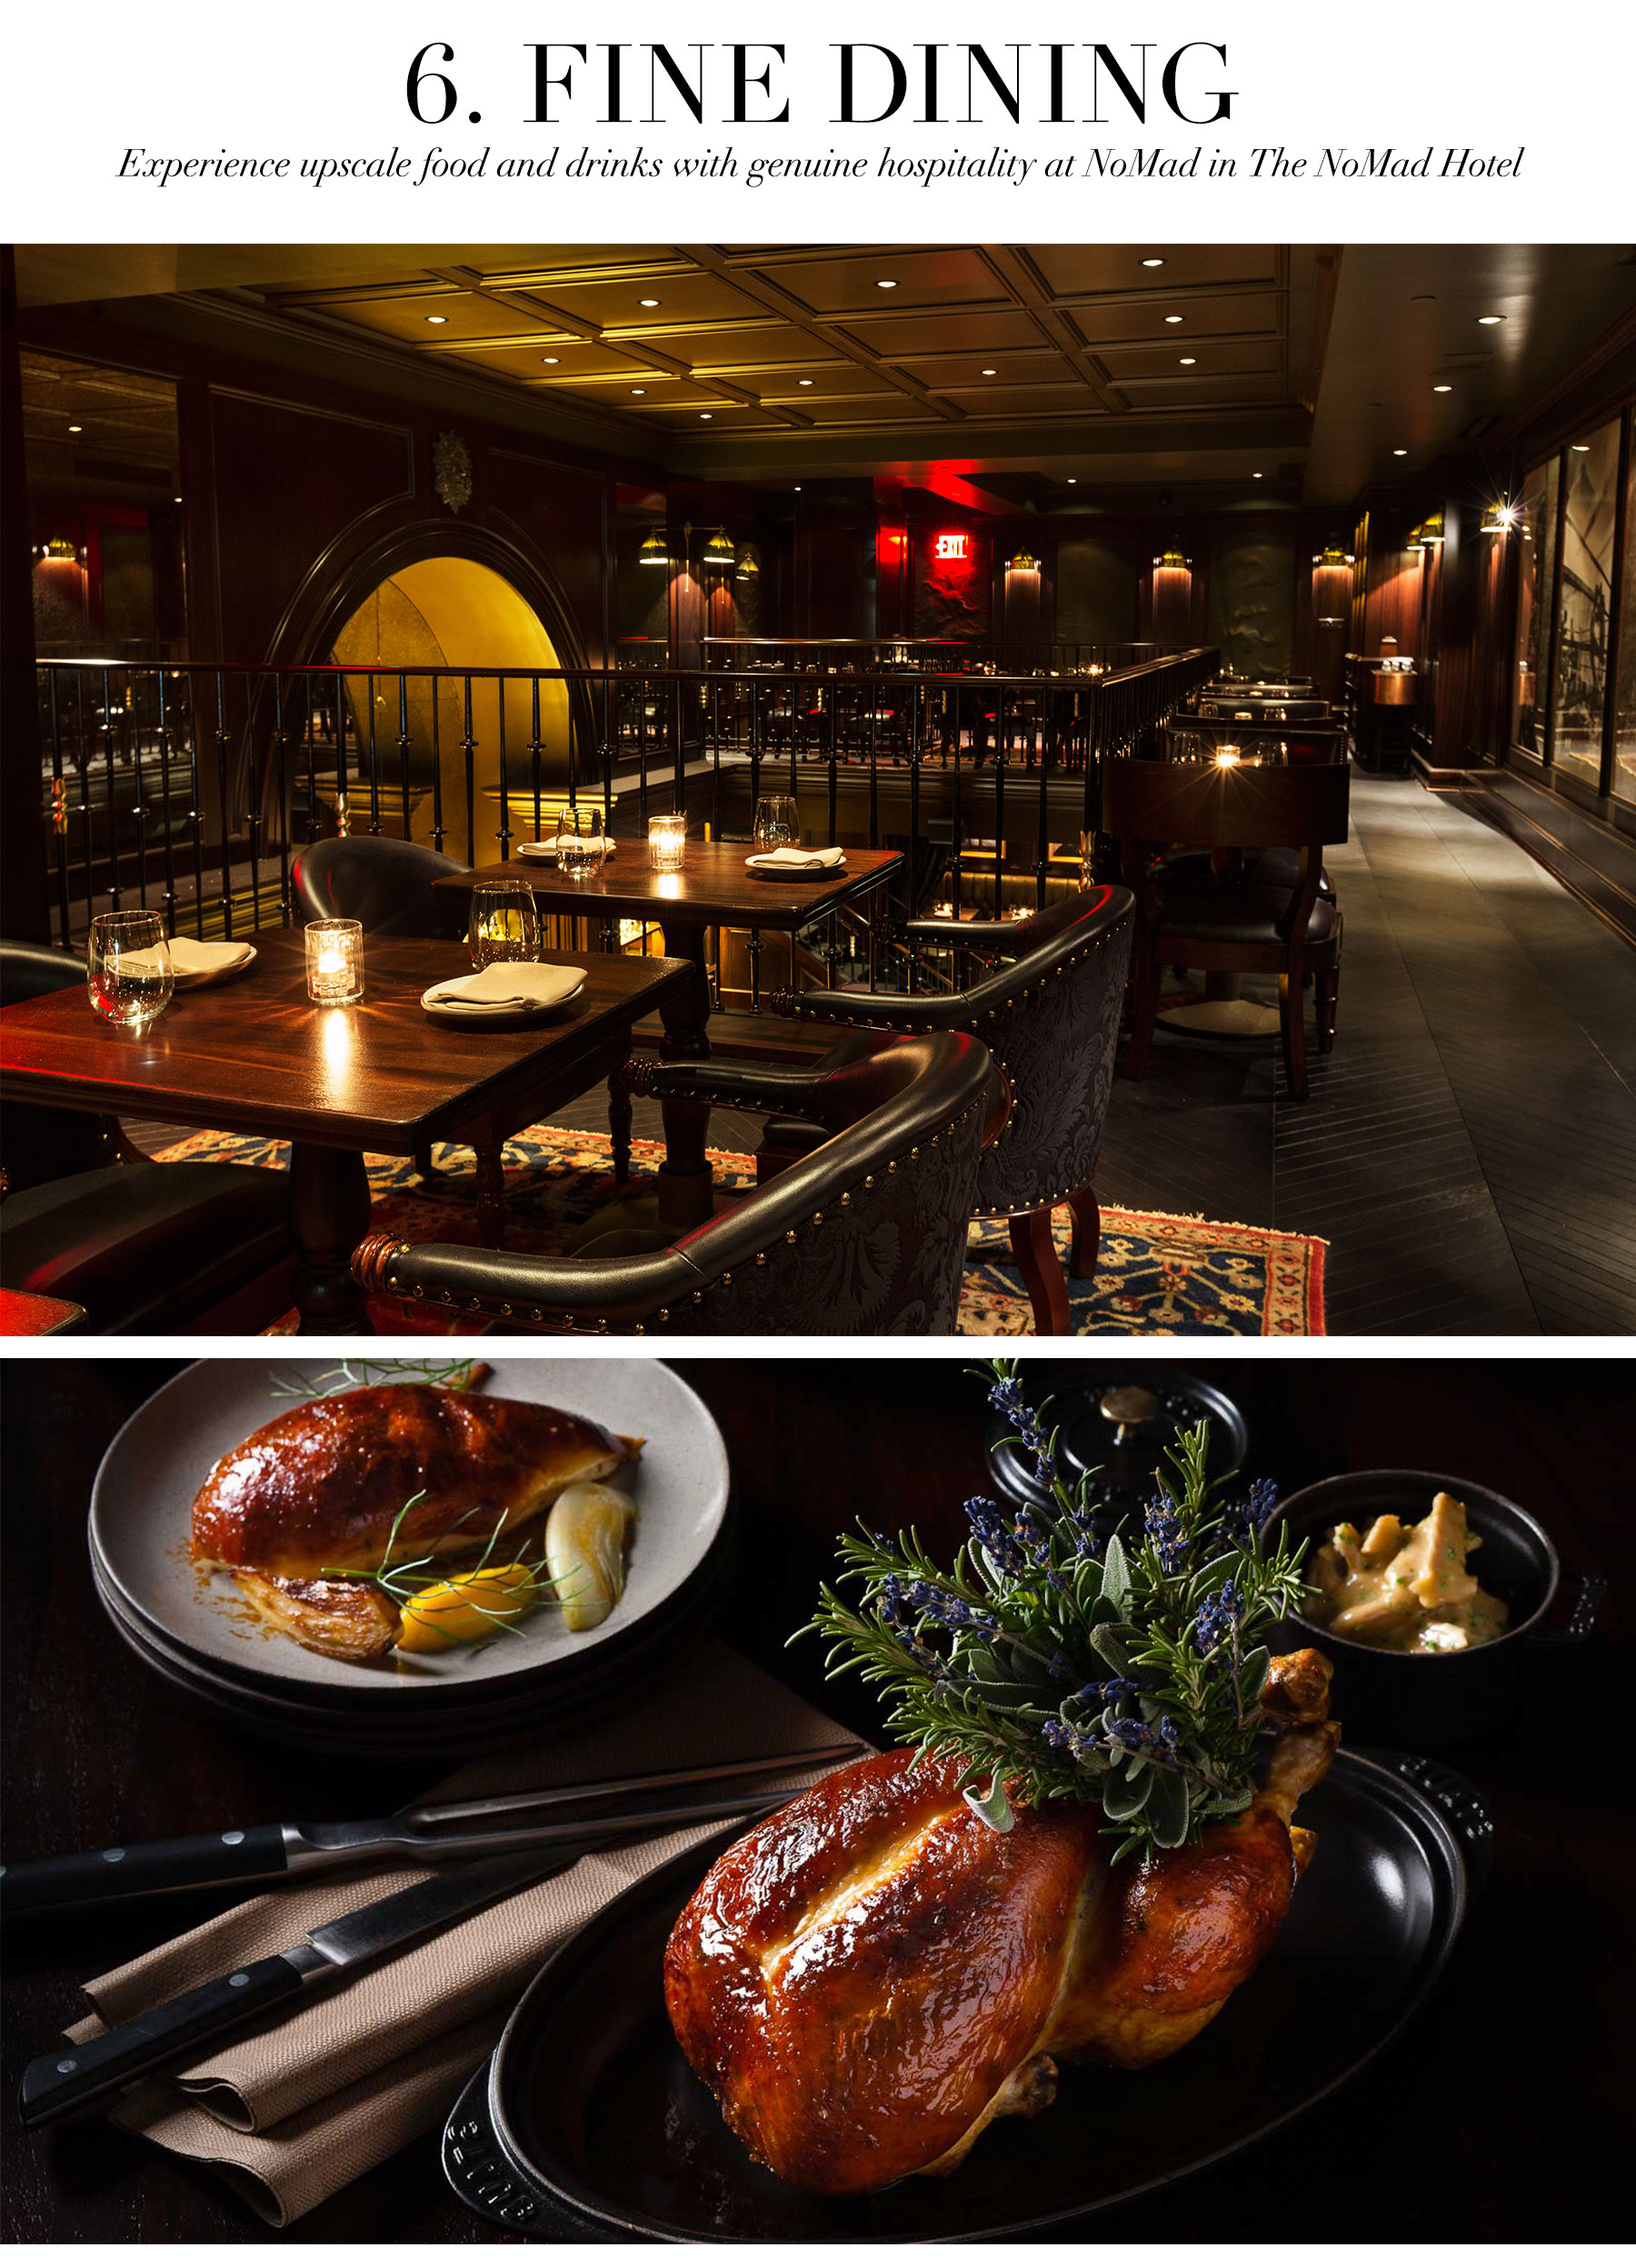 Ceci Johnson's Treat-Yourself Picks - Fine Dining - Experience upscale food and drinks with genuine hospitality at NoMad (in the NoMad hotel)